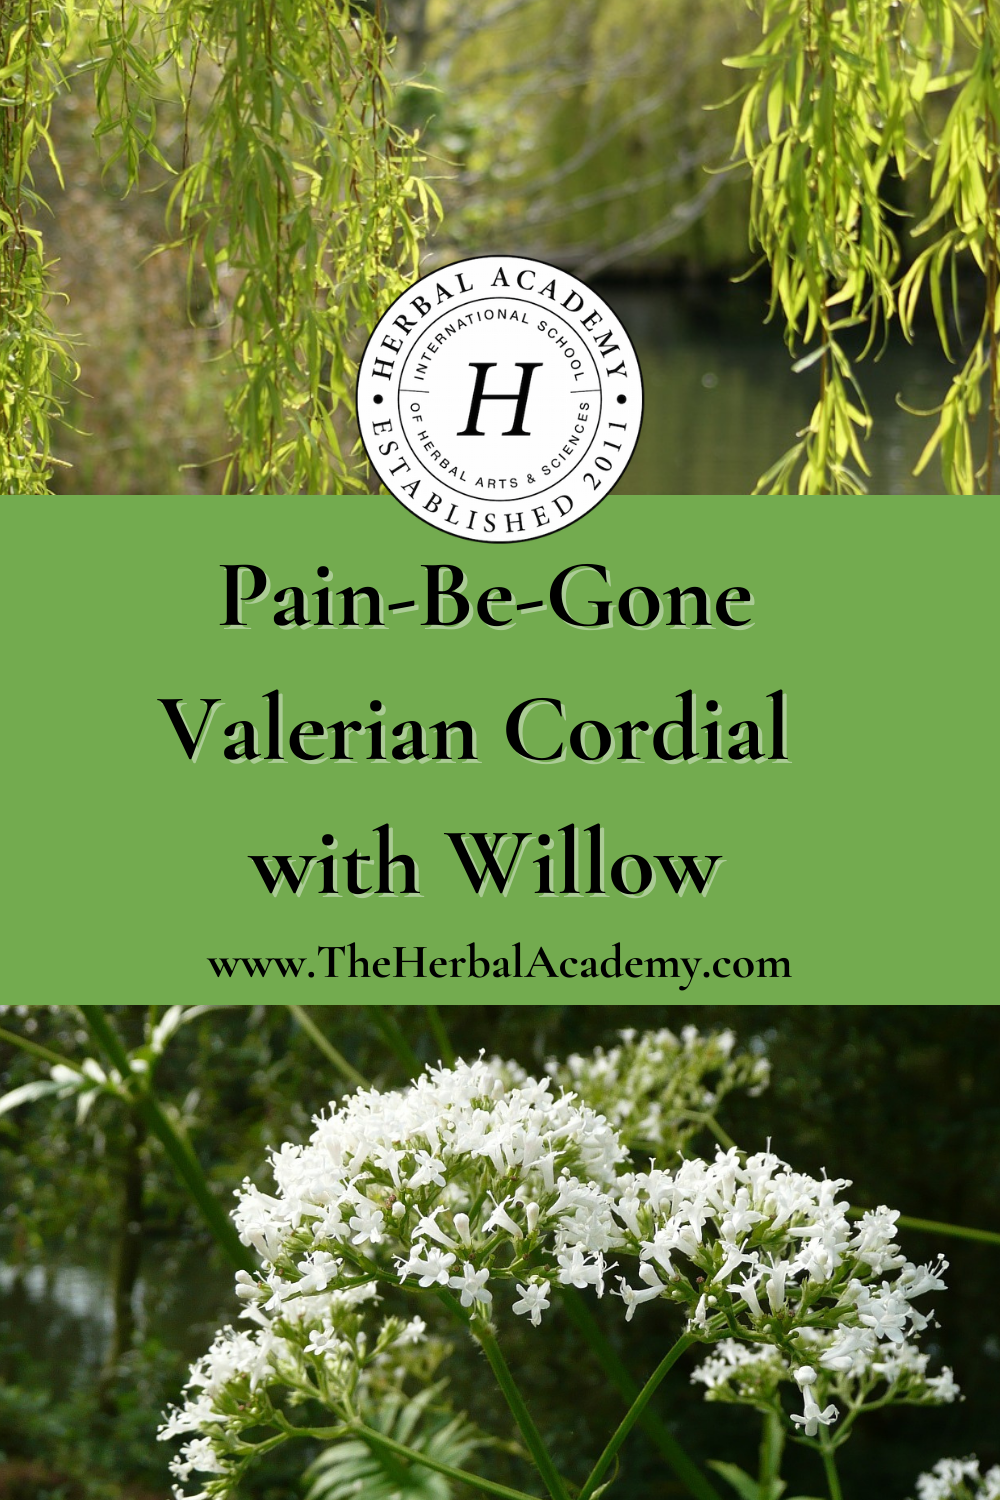 Pain-Be-Gone Valerian Cordial with Willow   Herbal Academy   This valerian cordial contains Valerian officinalis, known for its relaxant properties and its ability to relieve minor aches and pains.